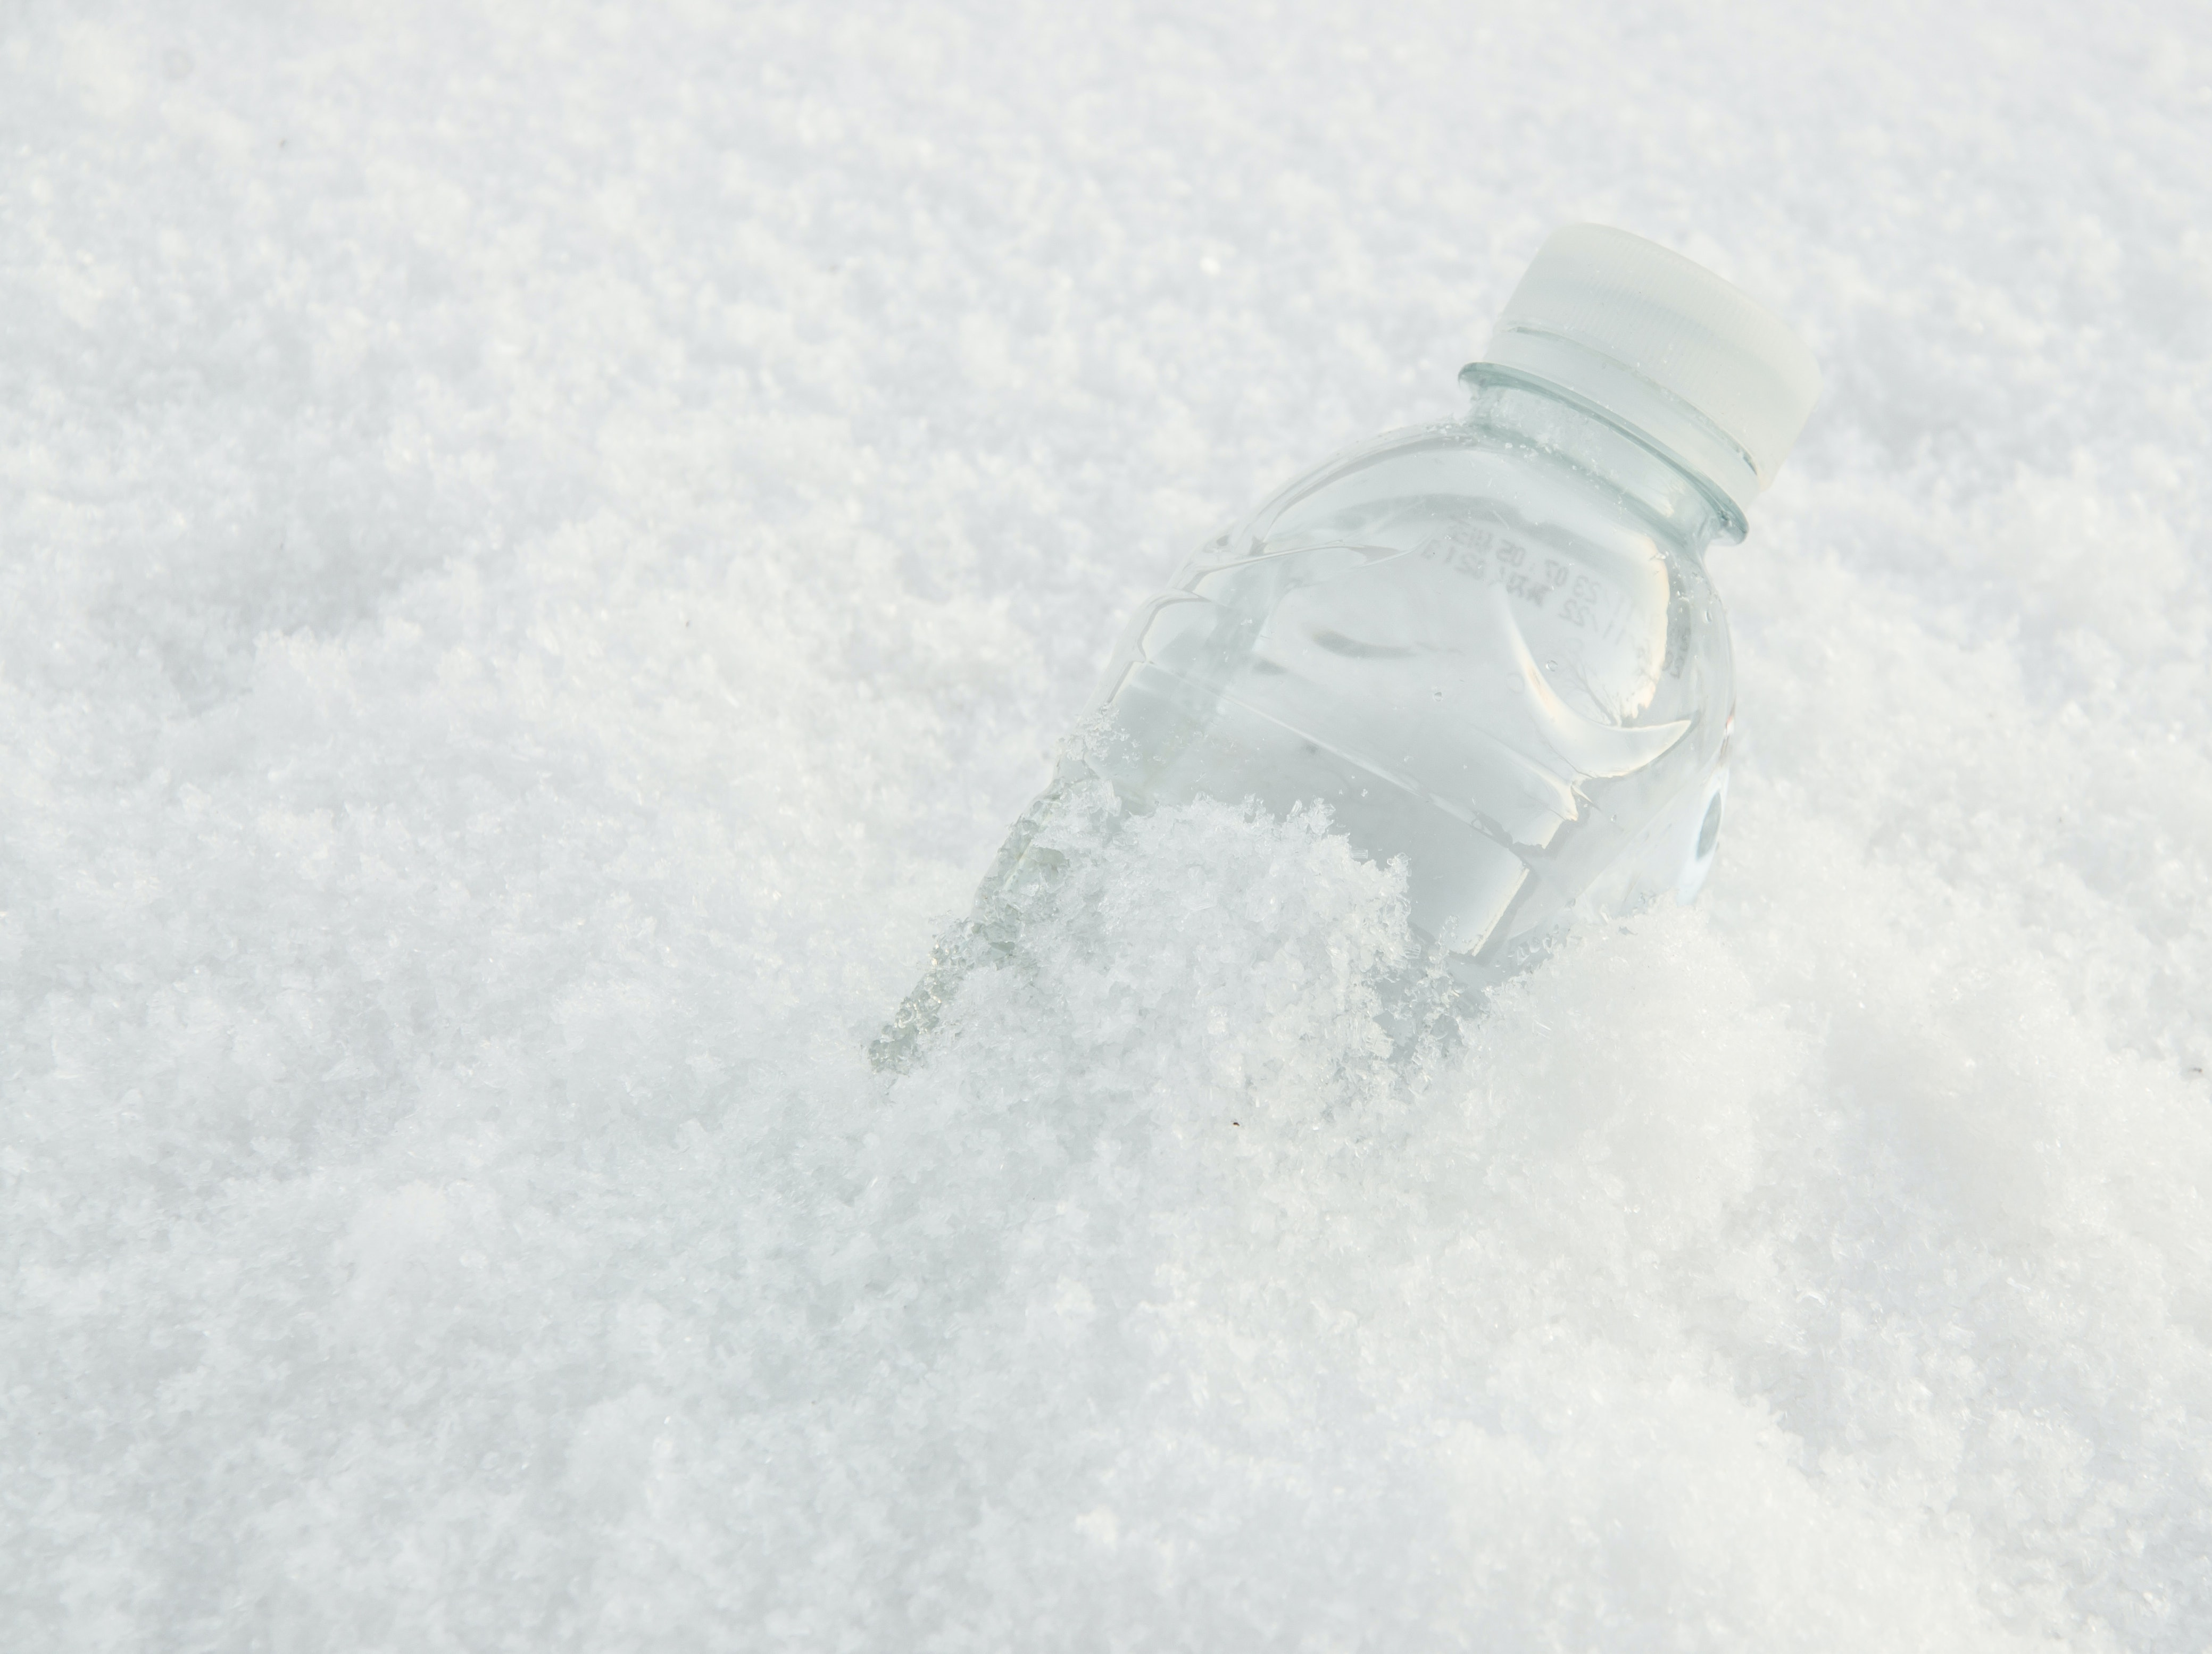 11 Cold Weather Science Experiments To Keep You Entertained